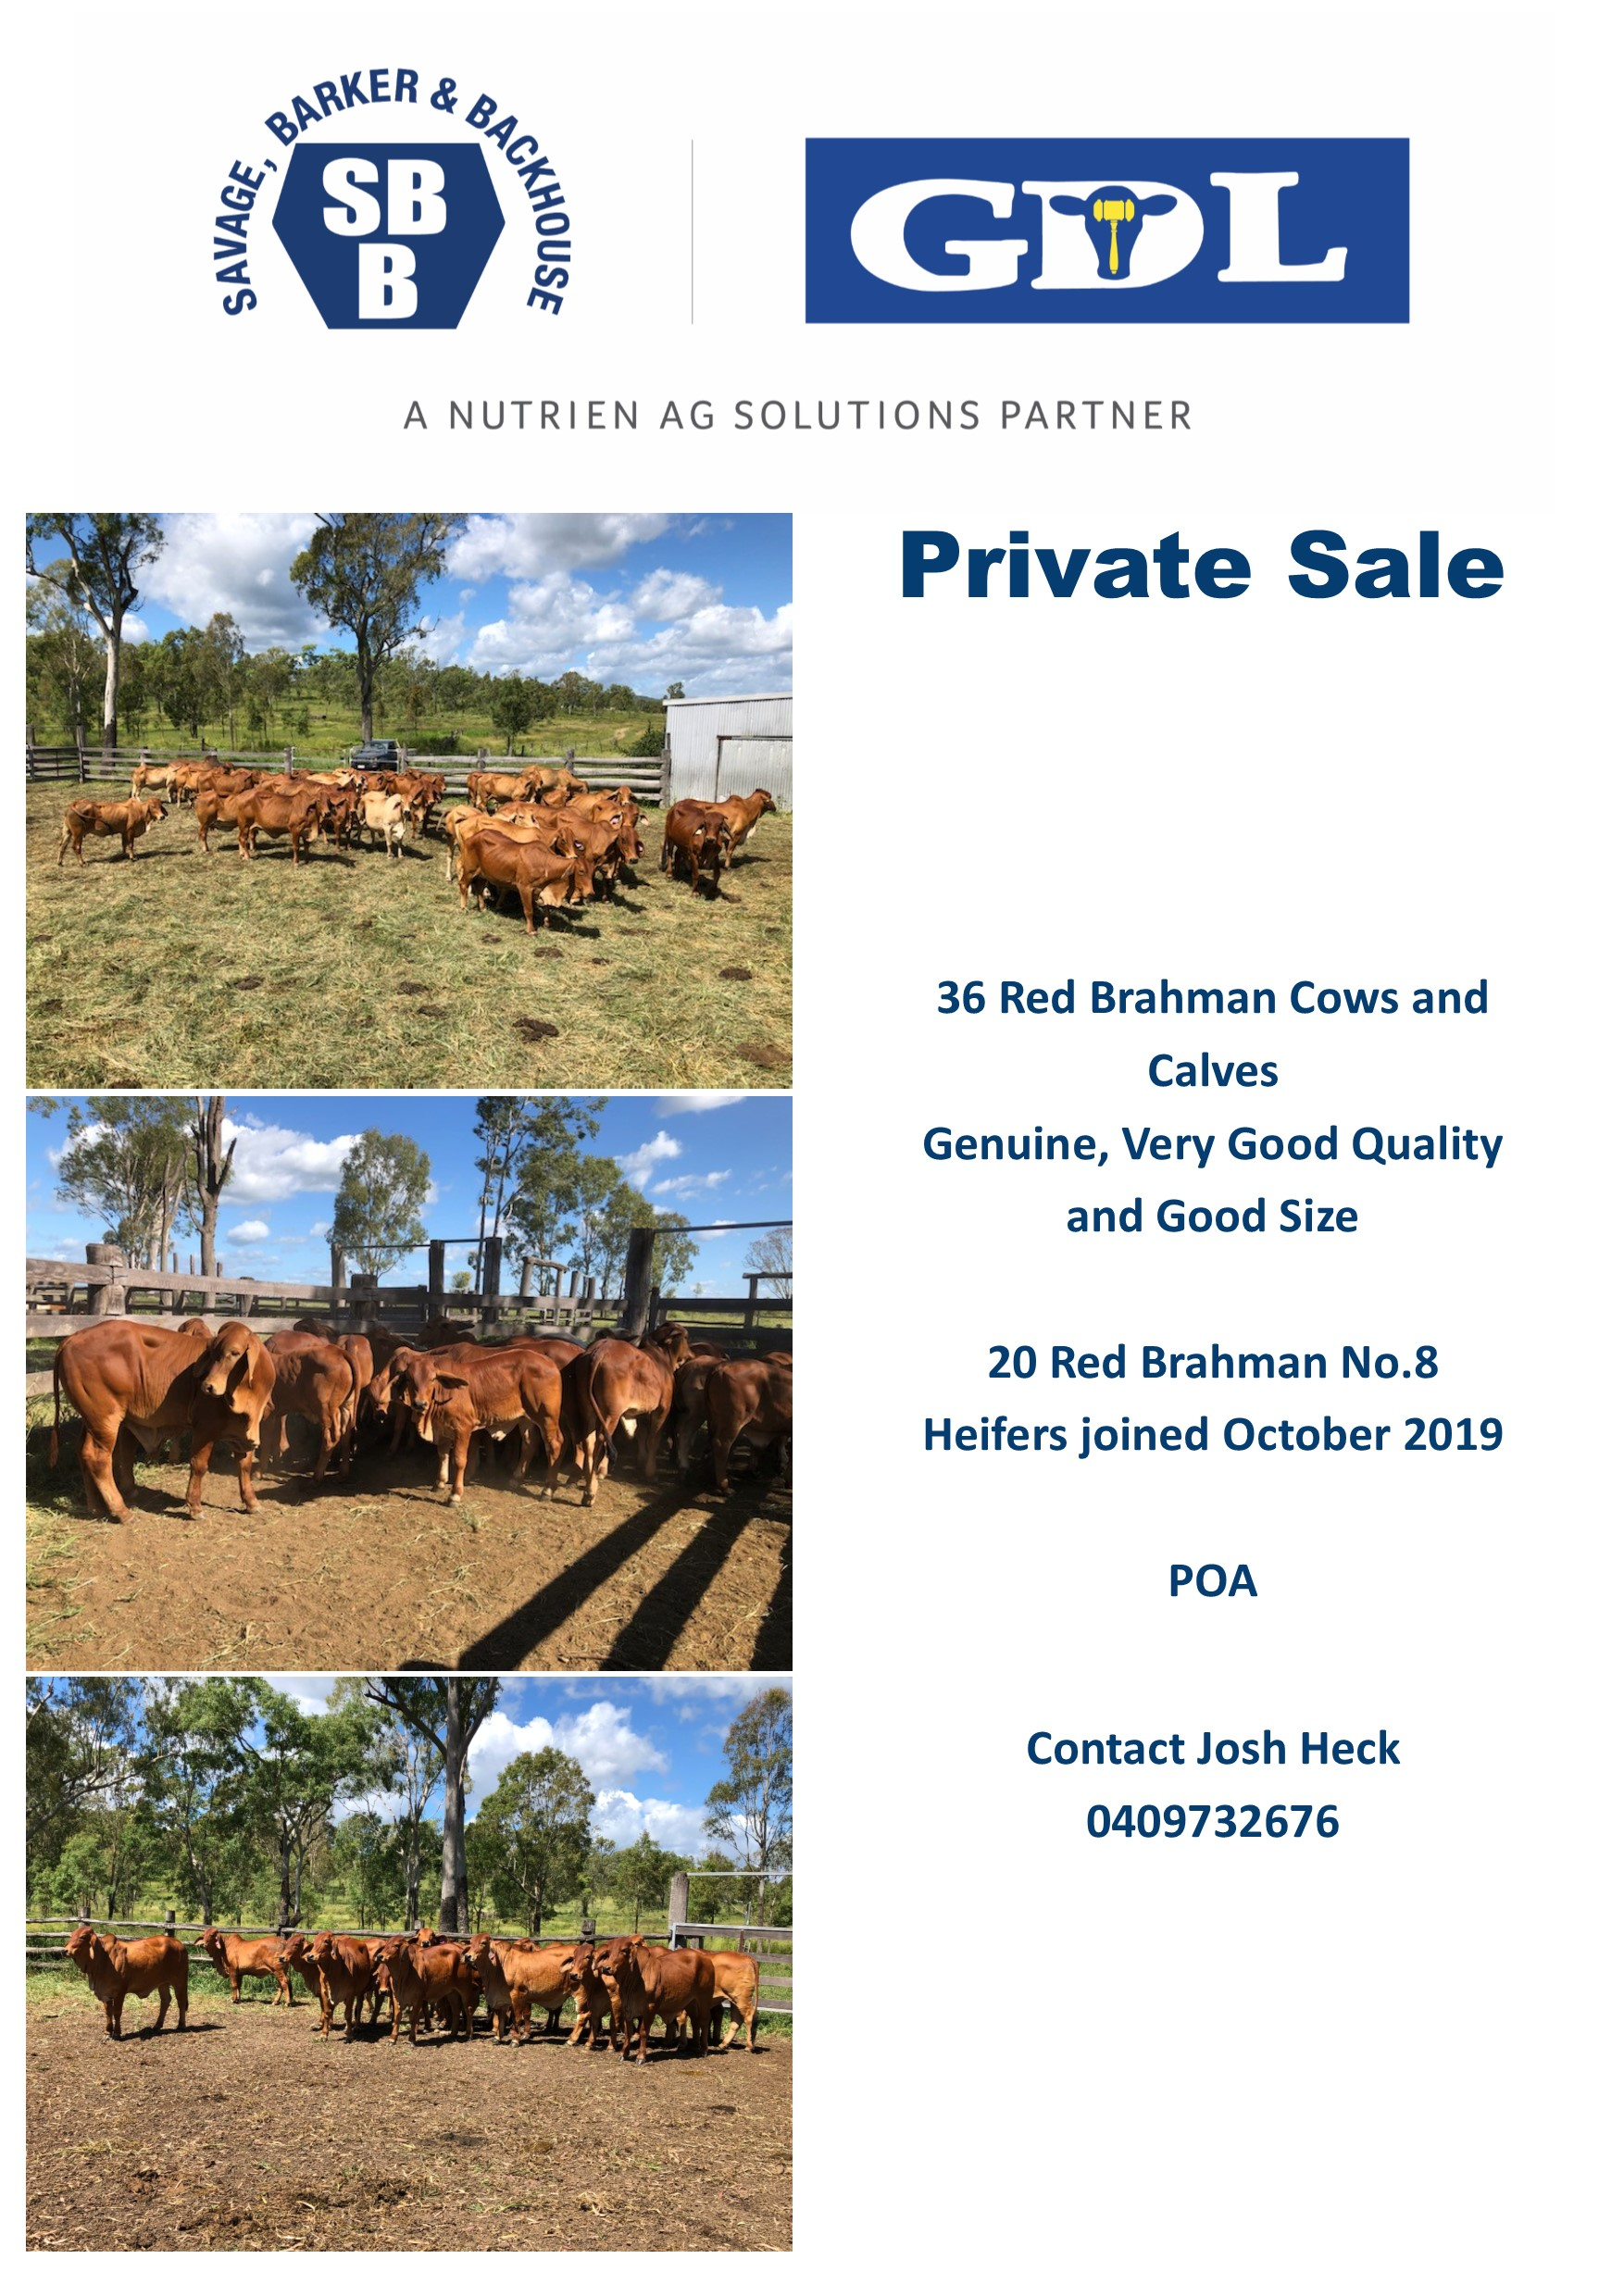 Private Sale -Red Brahman 36  Cows & Calves & 20  No.8 Heifers